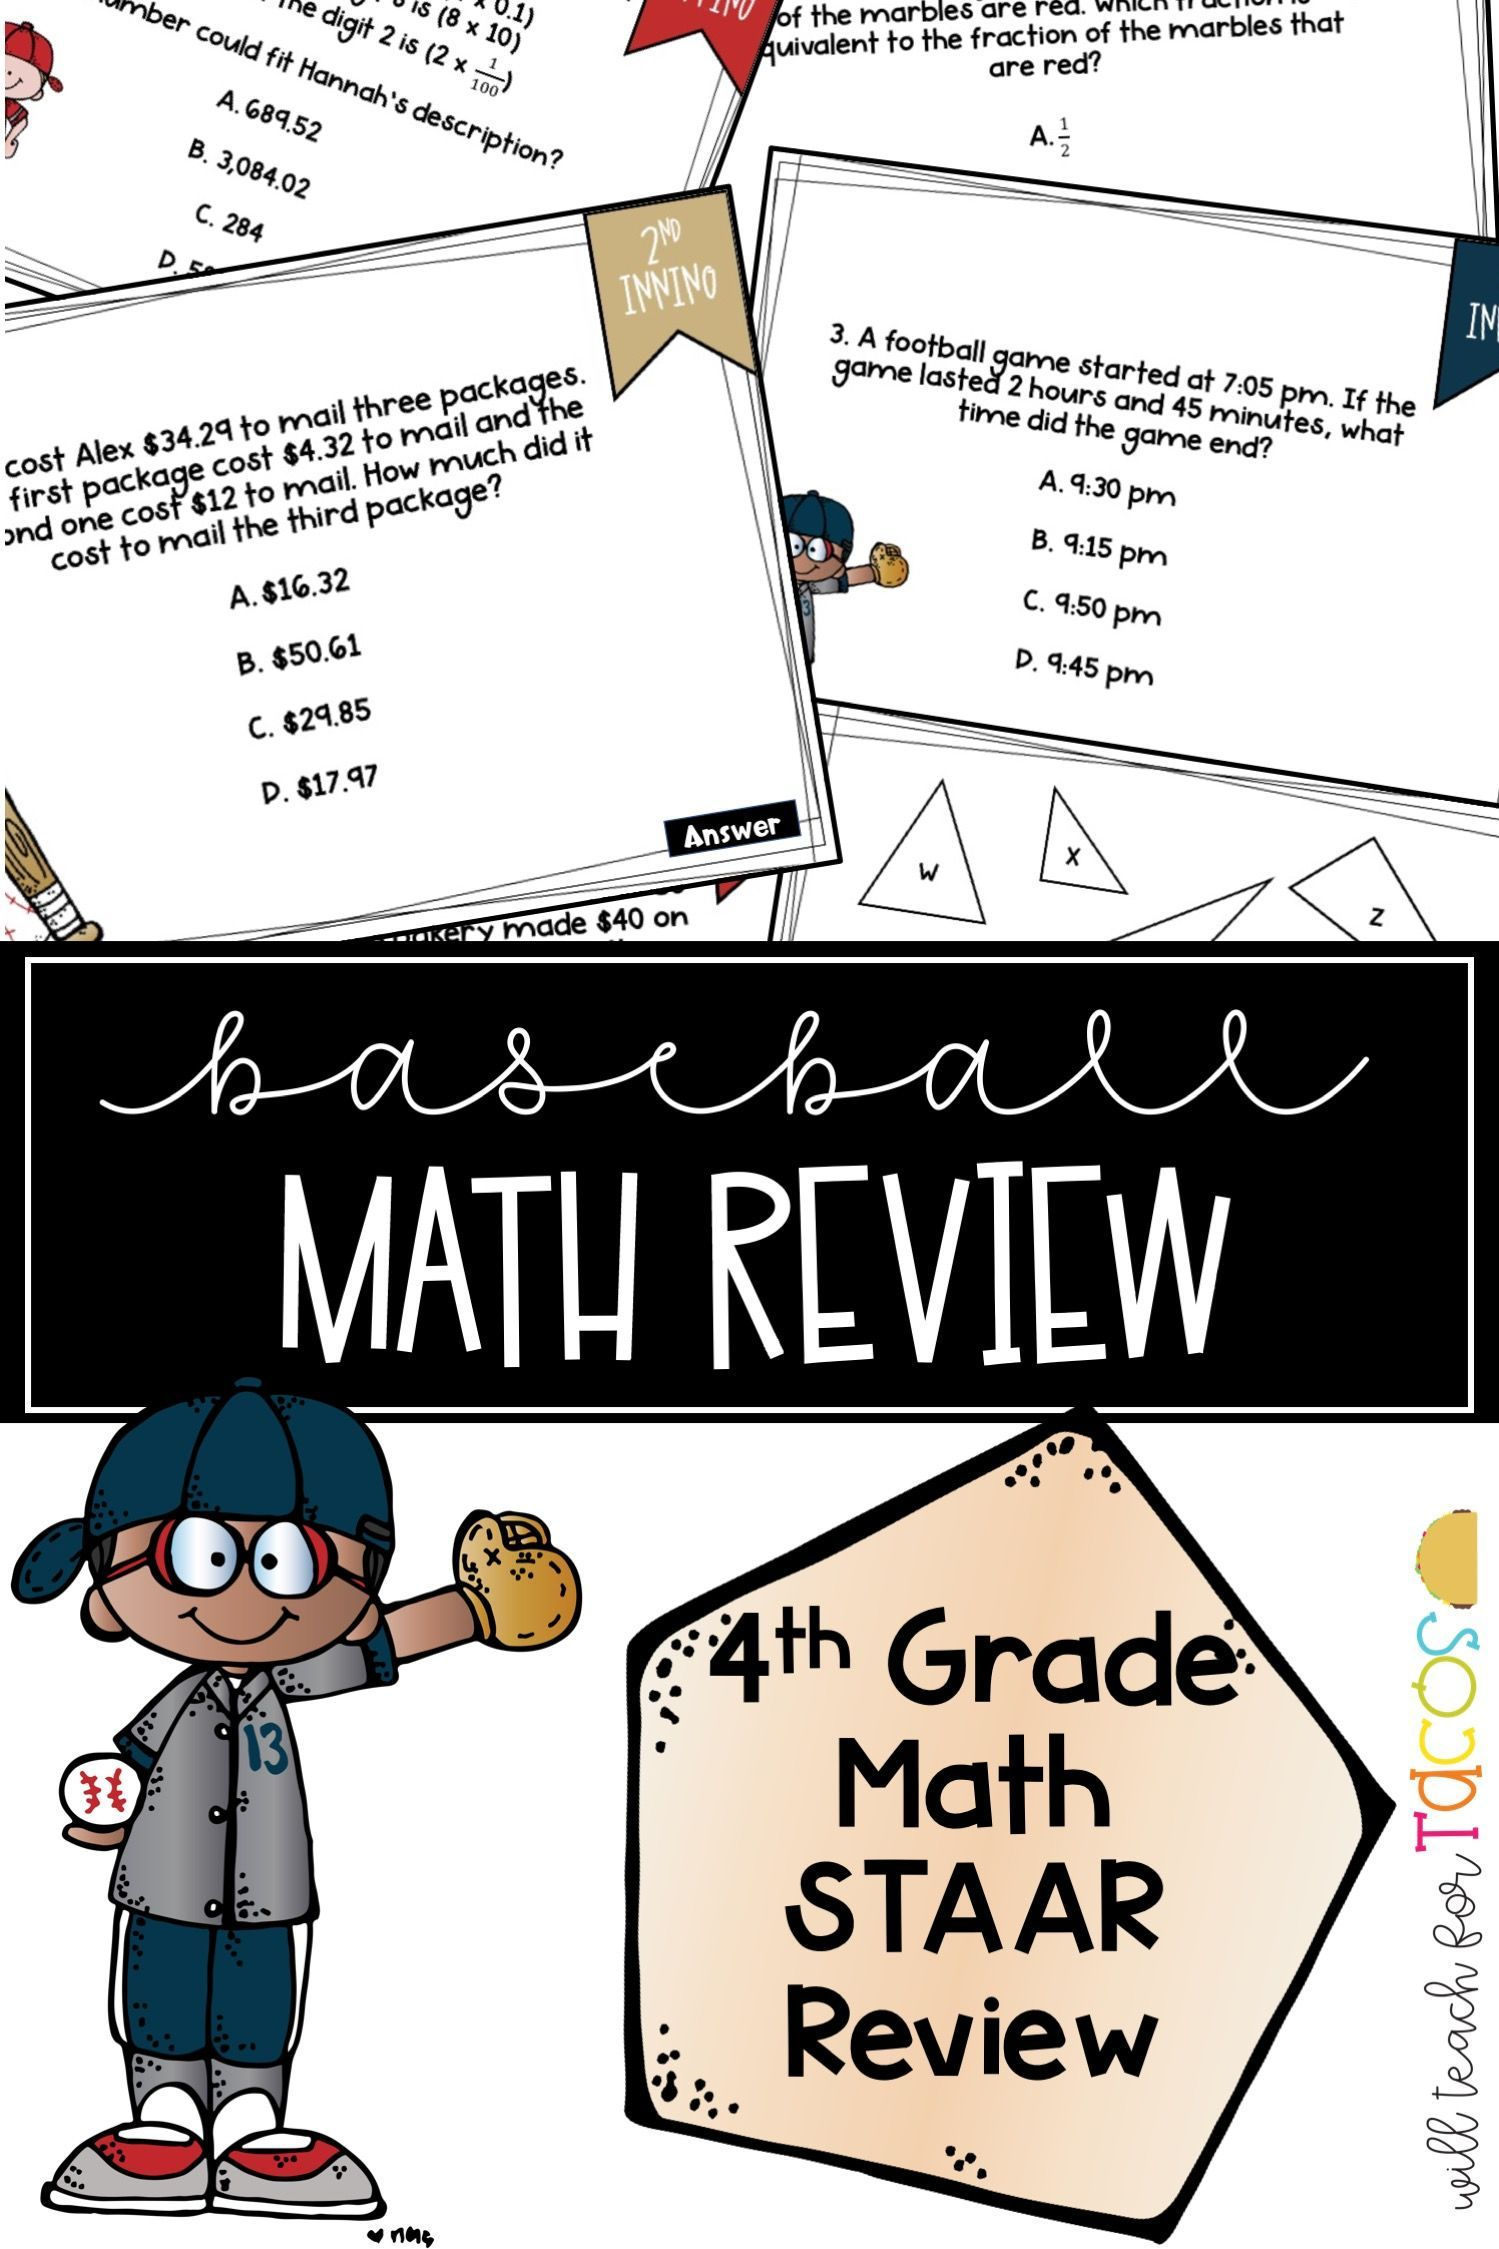 Staar Baseball 4th Grade Math Review